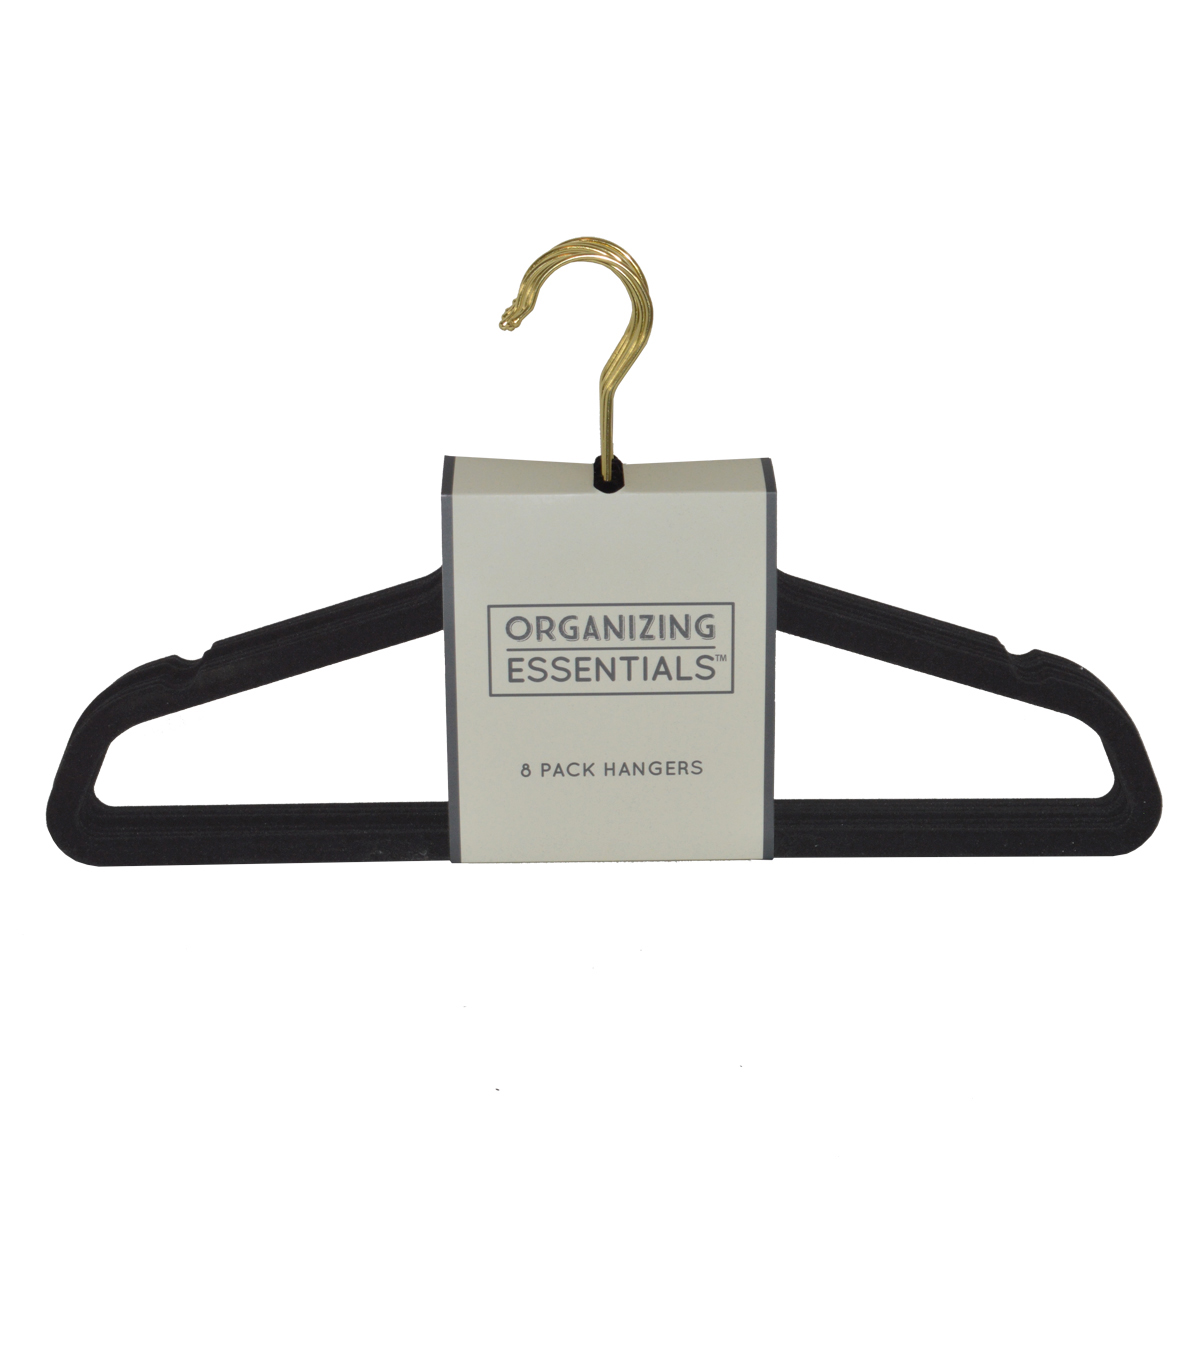 Organizing Essentials™ 8 Pack Hangers-Black & Gold